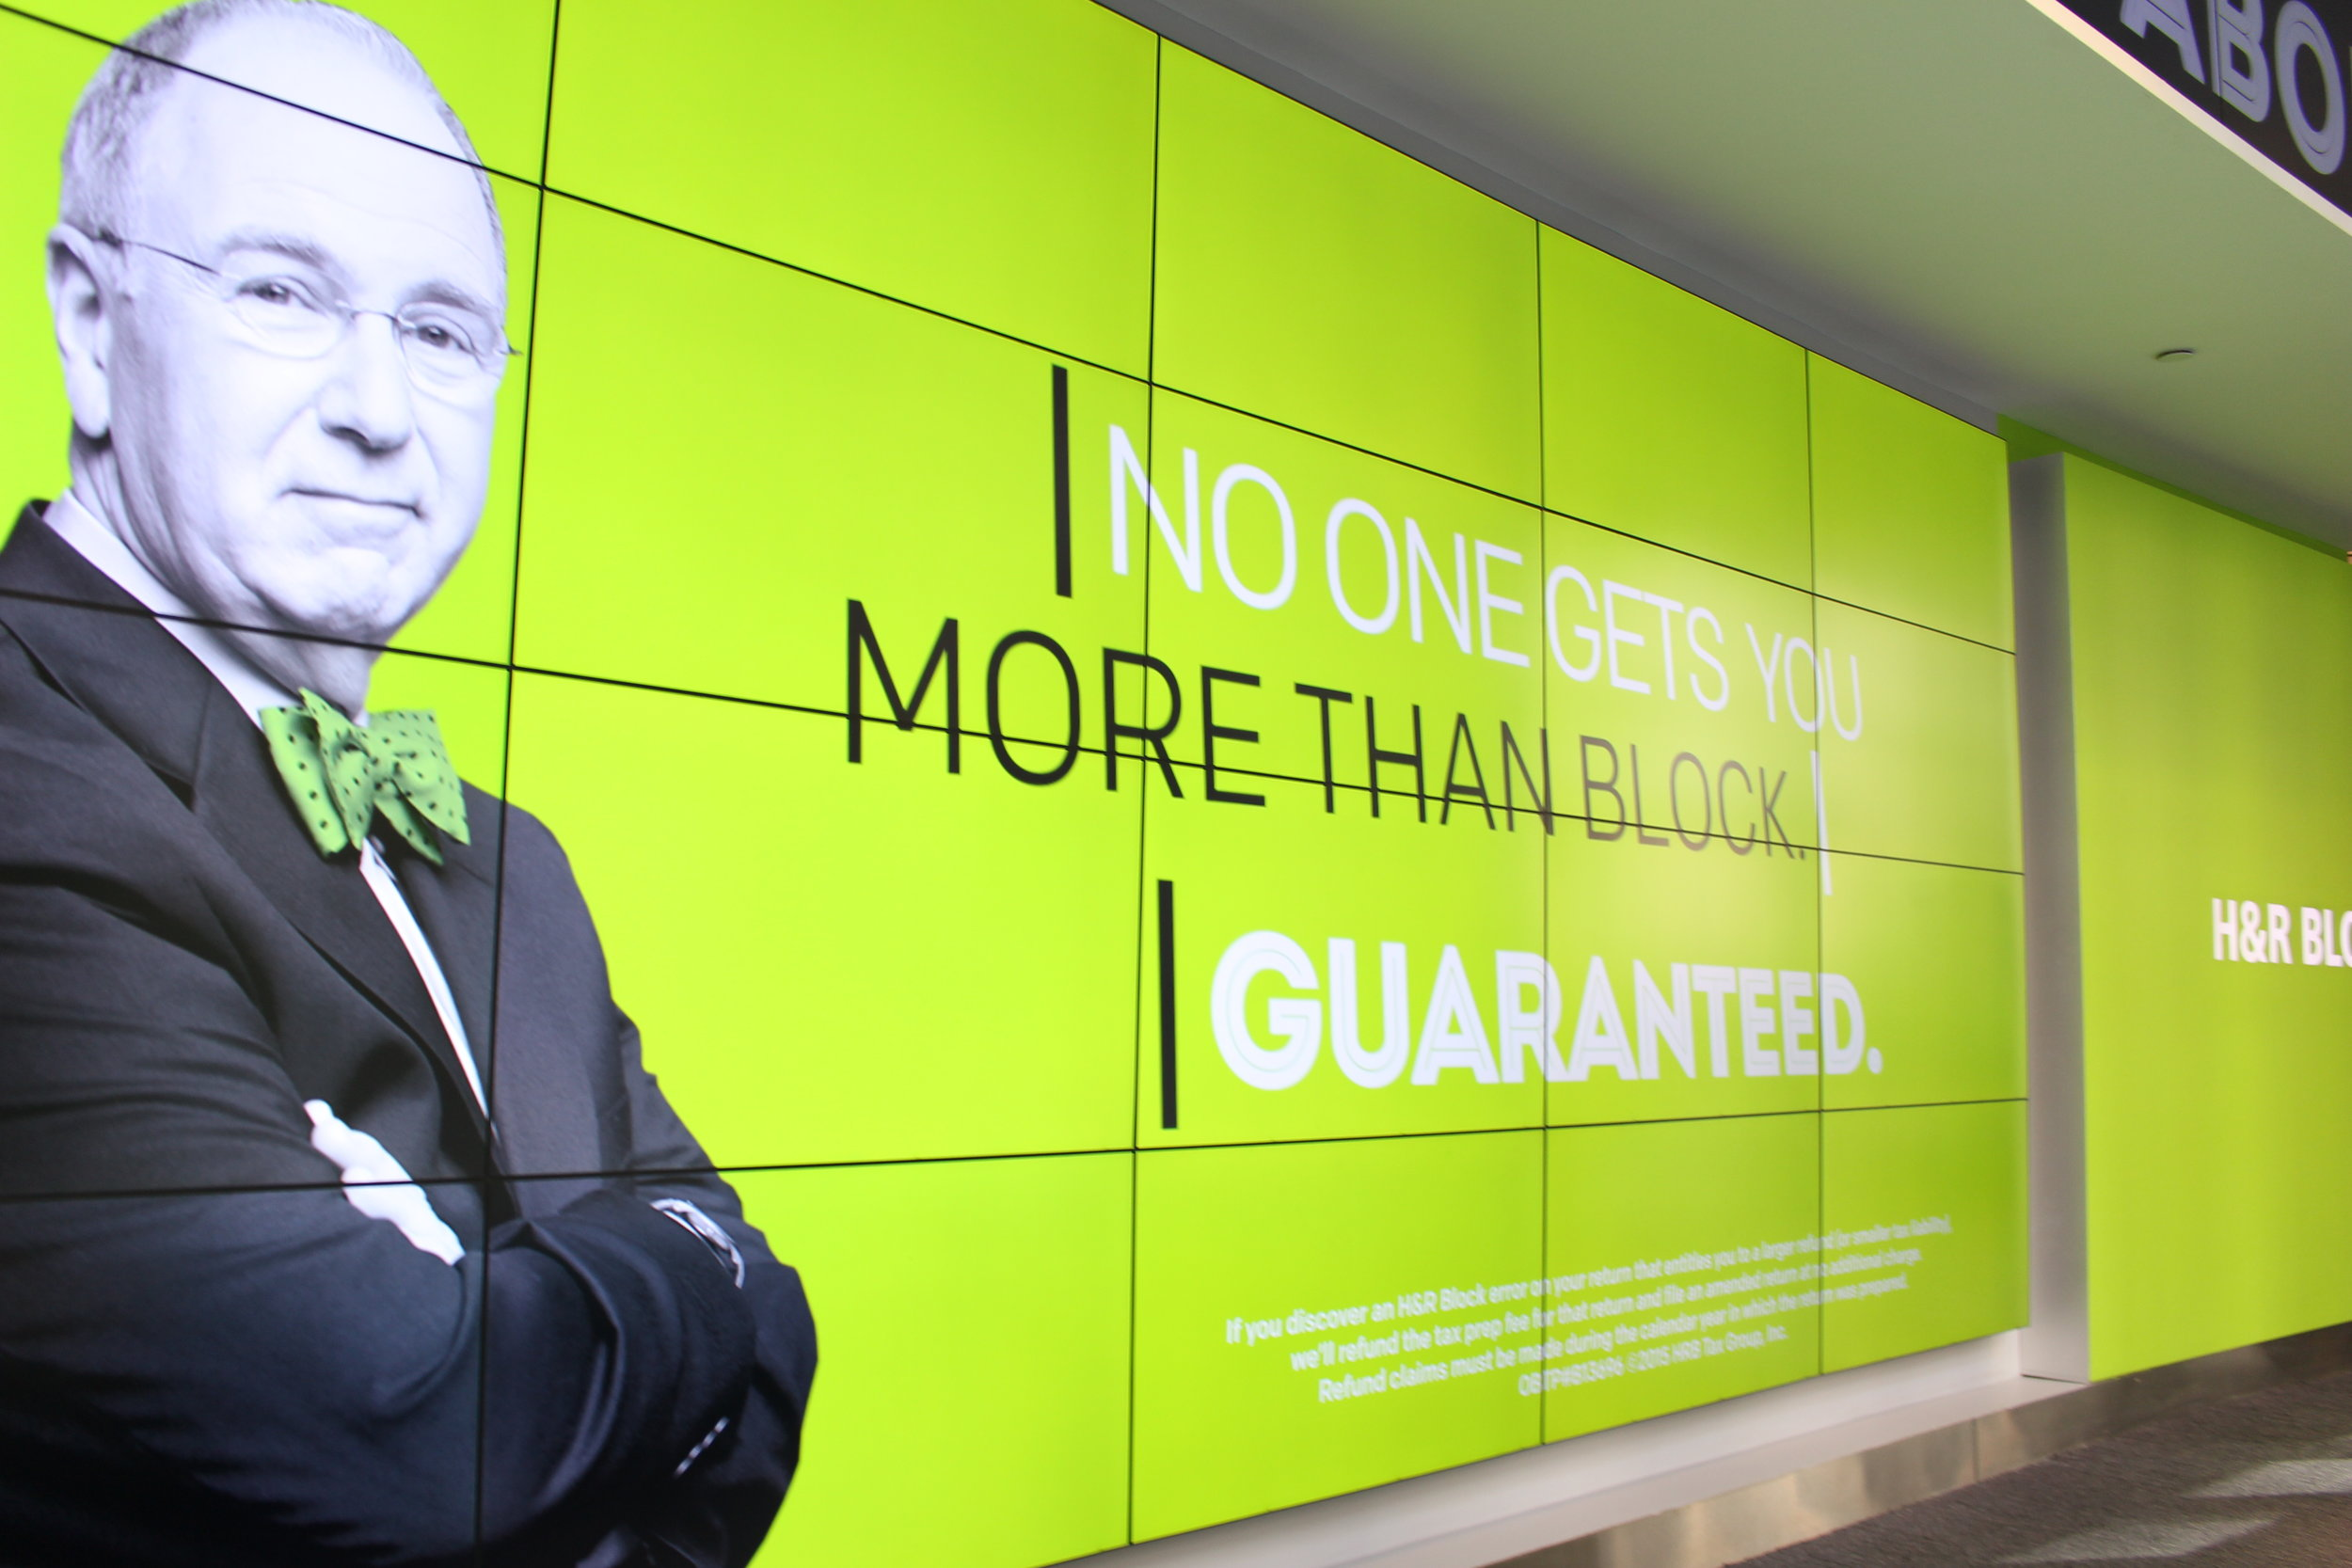 H&R Block Flagship Office, Time Square New York City. Photo Credit, August Hour Inc.